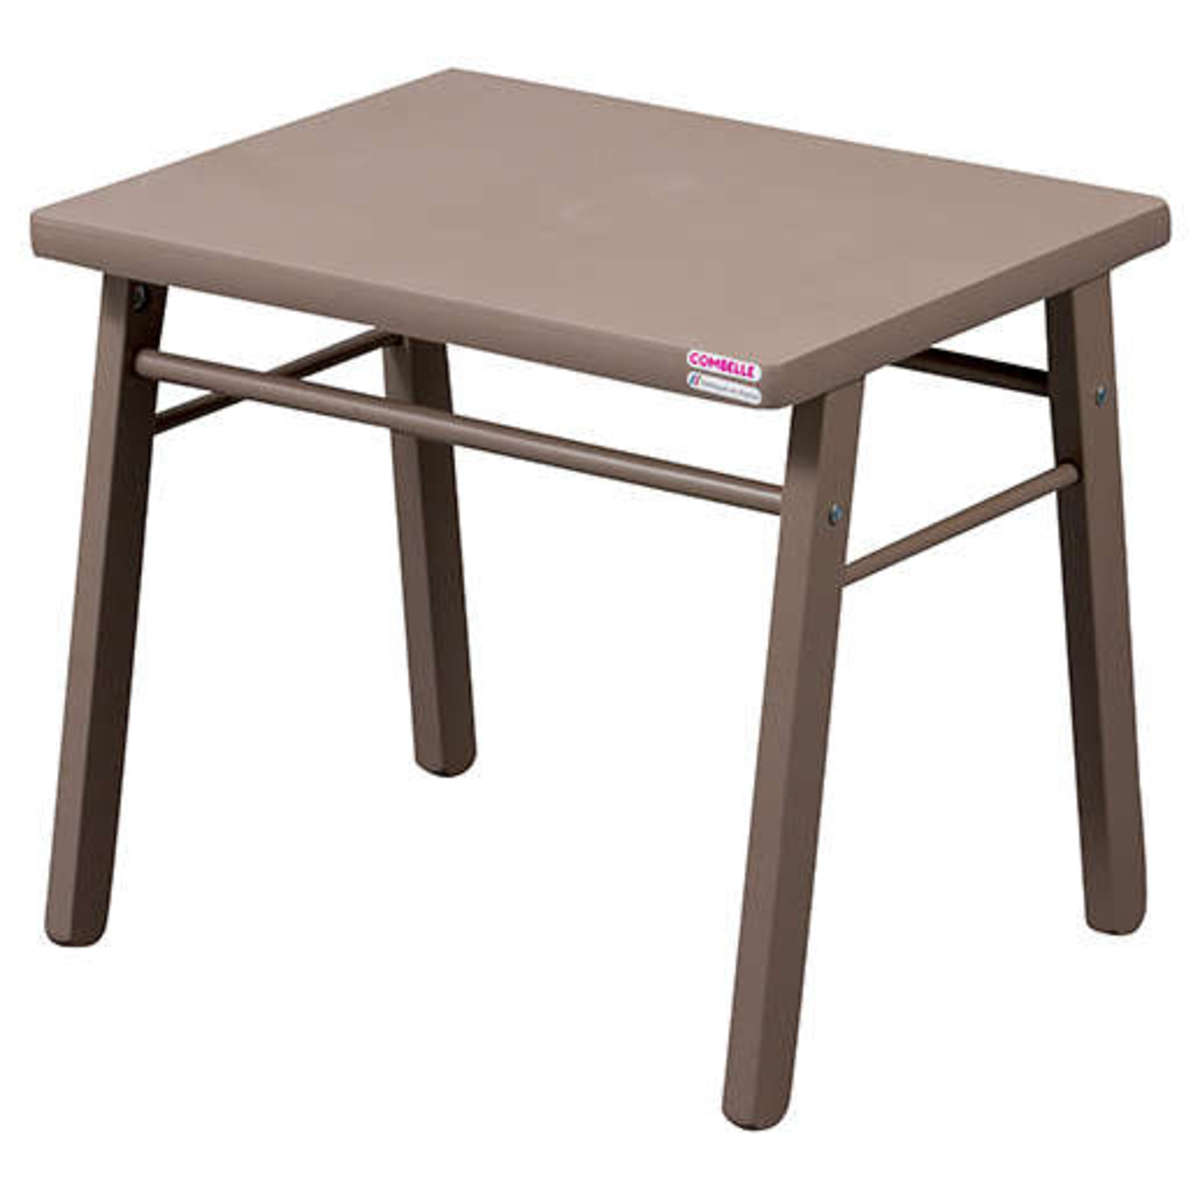 Table & Chaise Table Enfant - Taupe Table Enfant - Taupe